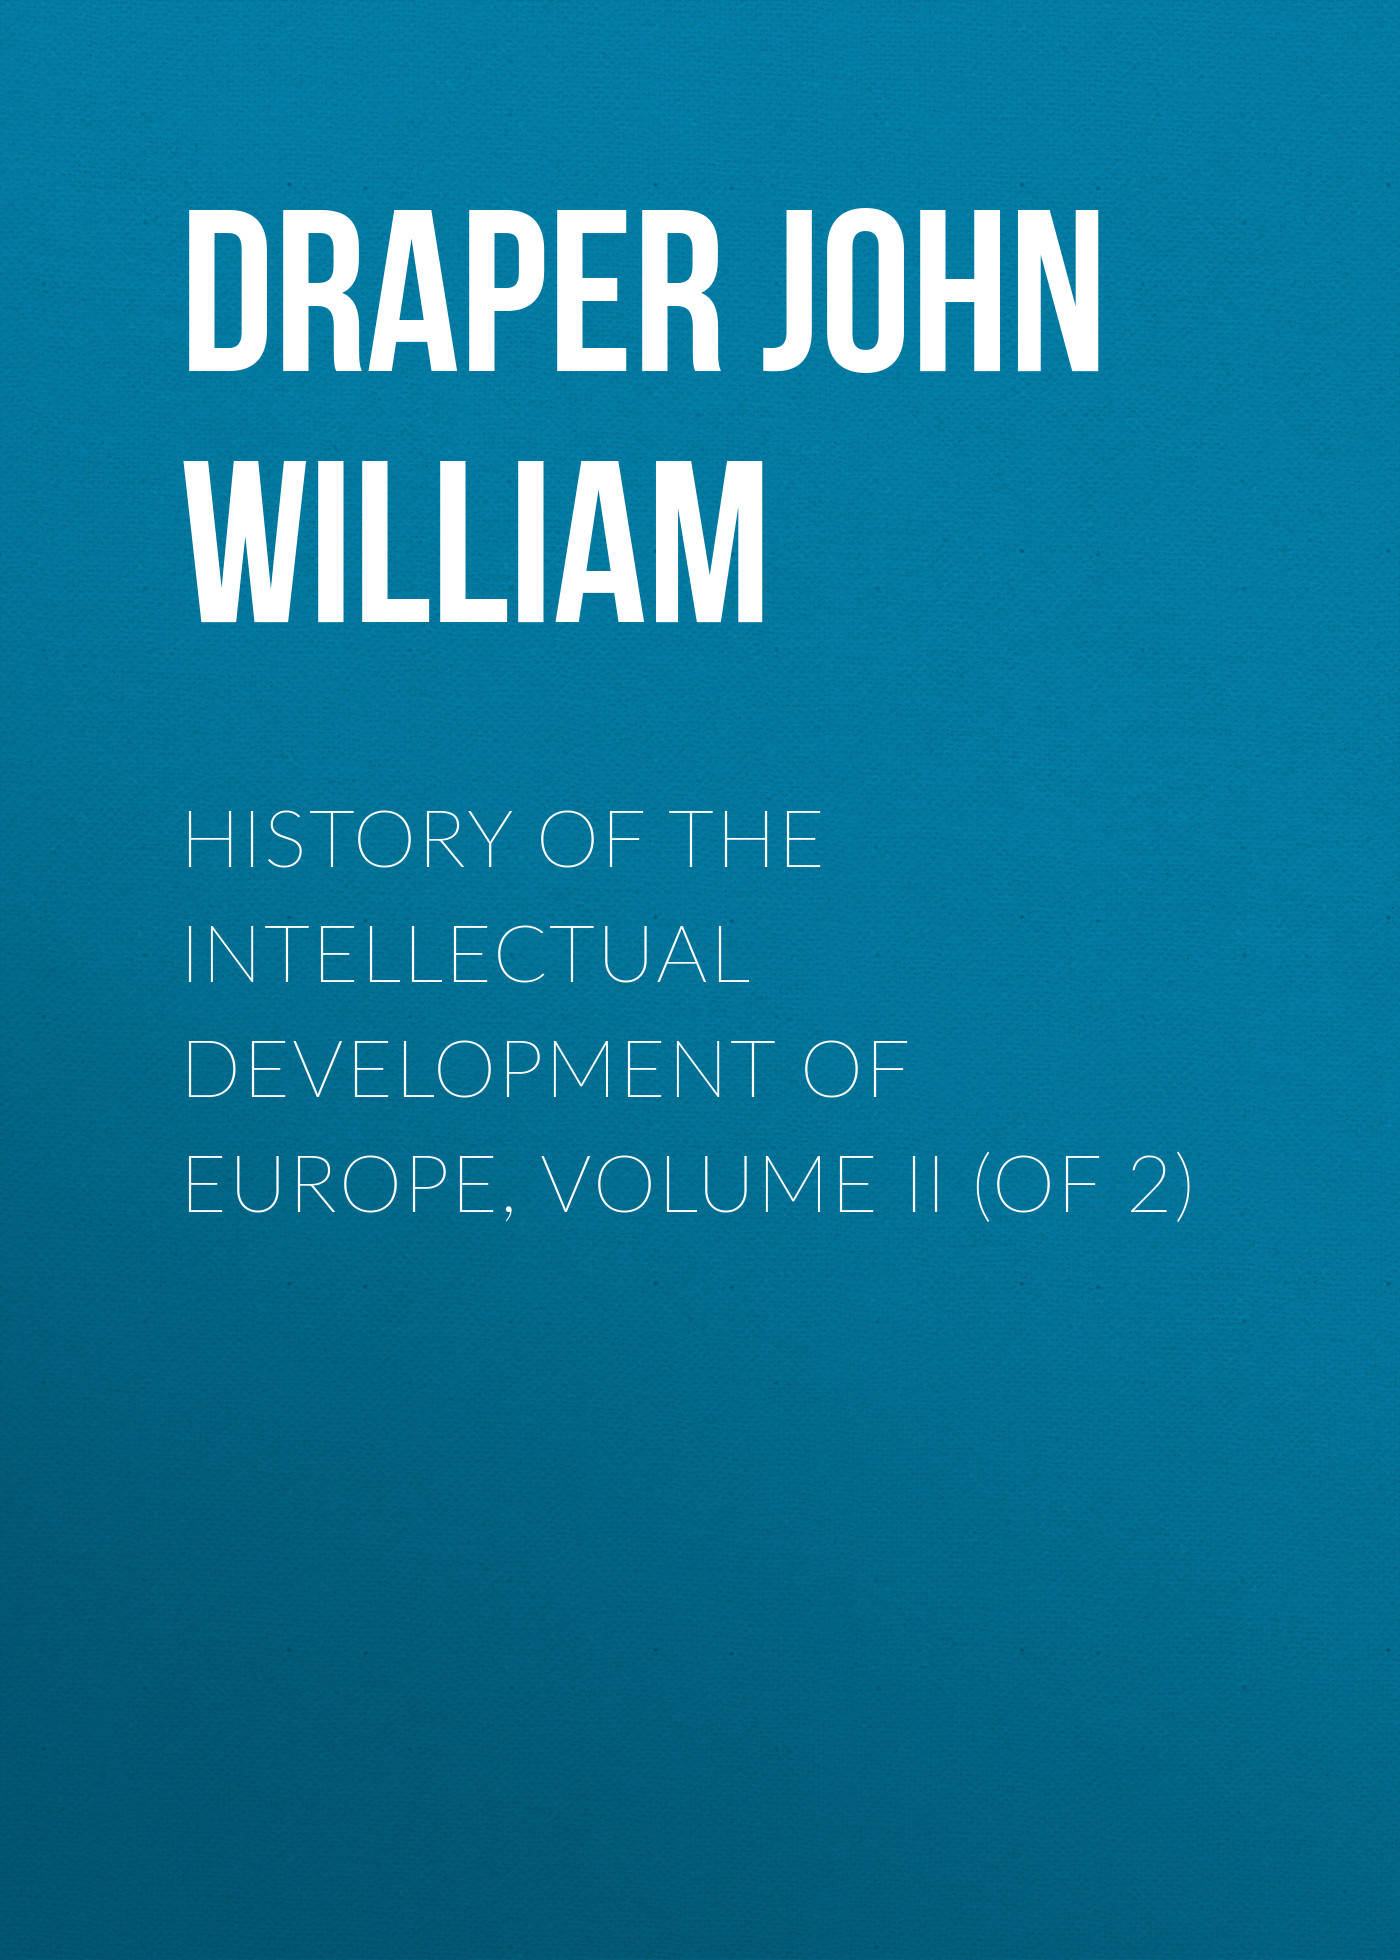 Фото - Draper John William History of the Intellectual Development of Europe, Volume II (of 2) m guizot history of richard cromwell and the restoration of charles ii volume 2